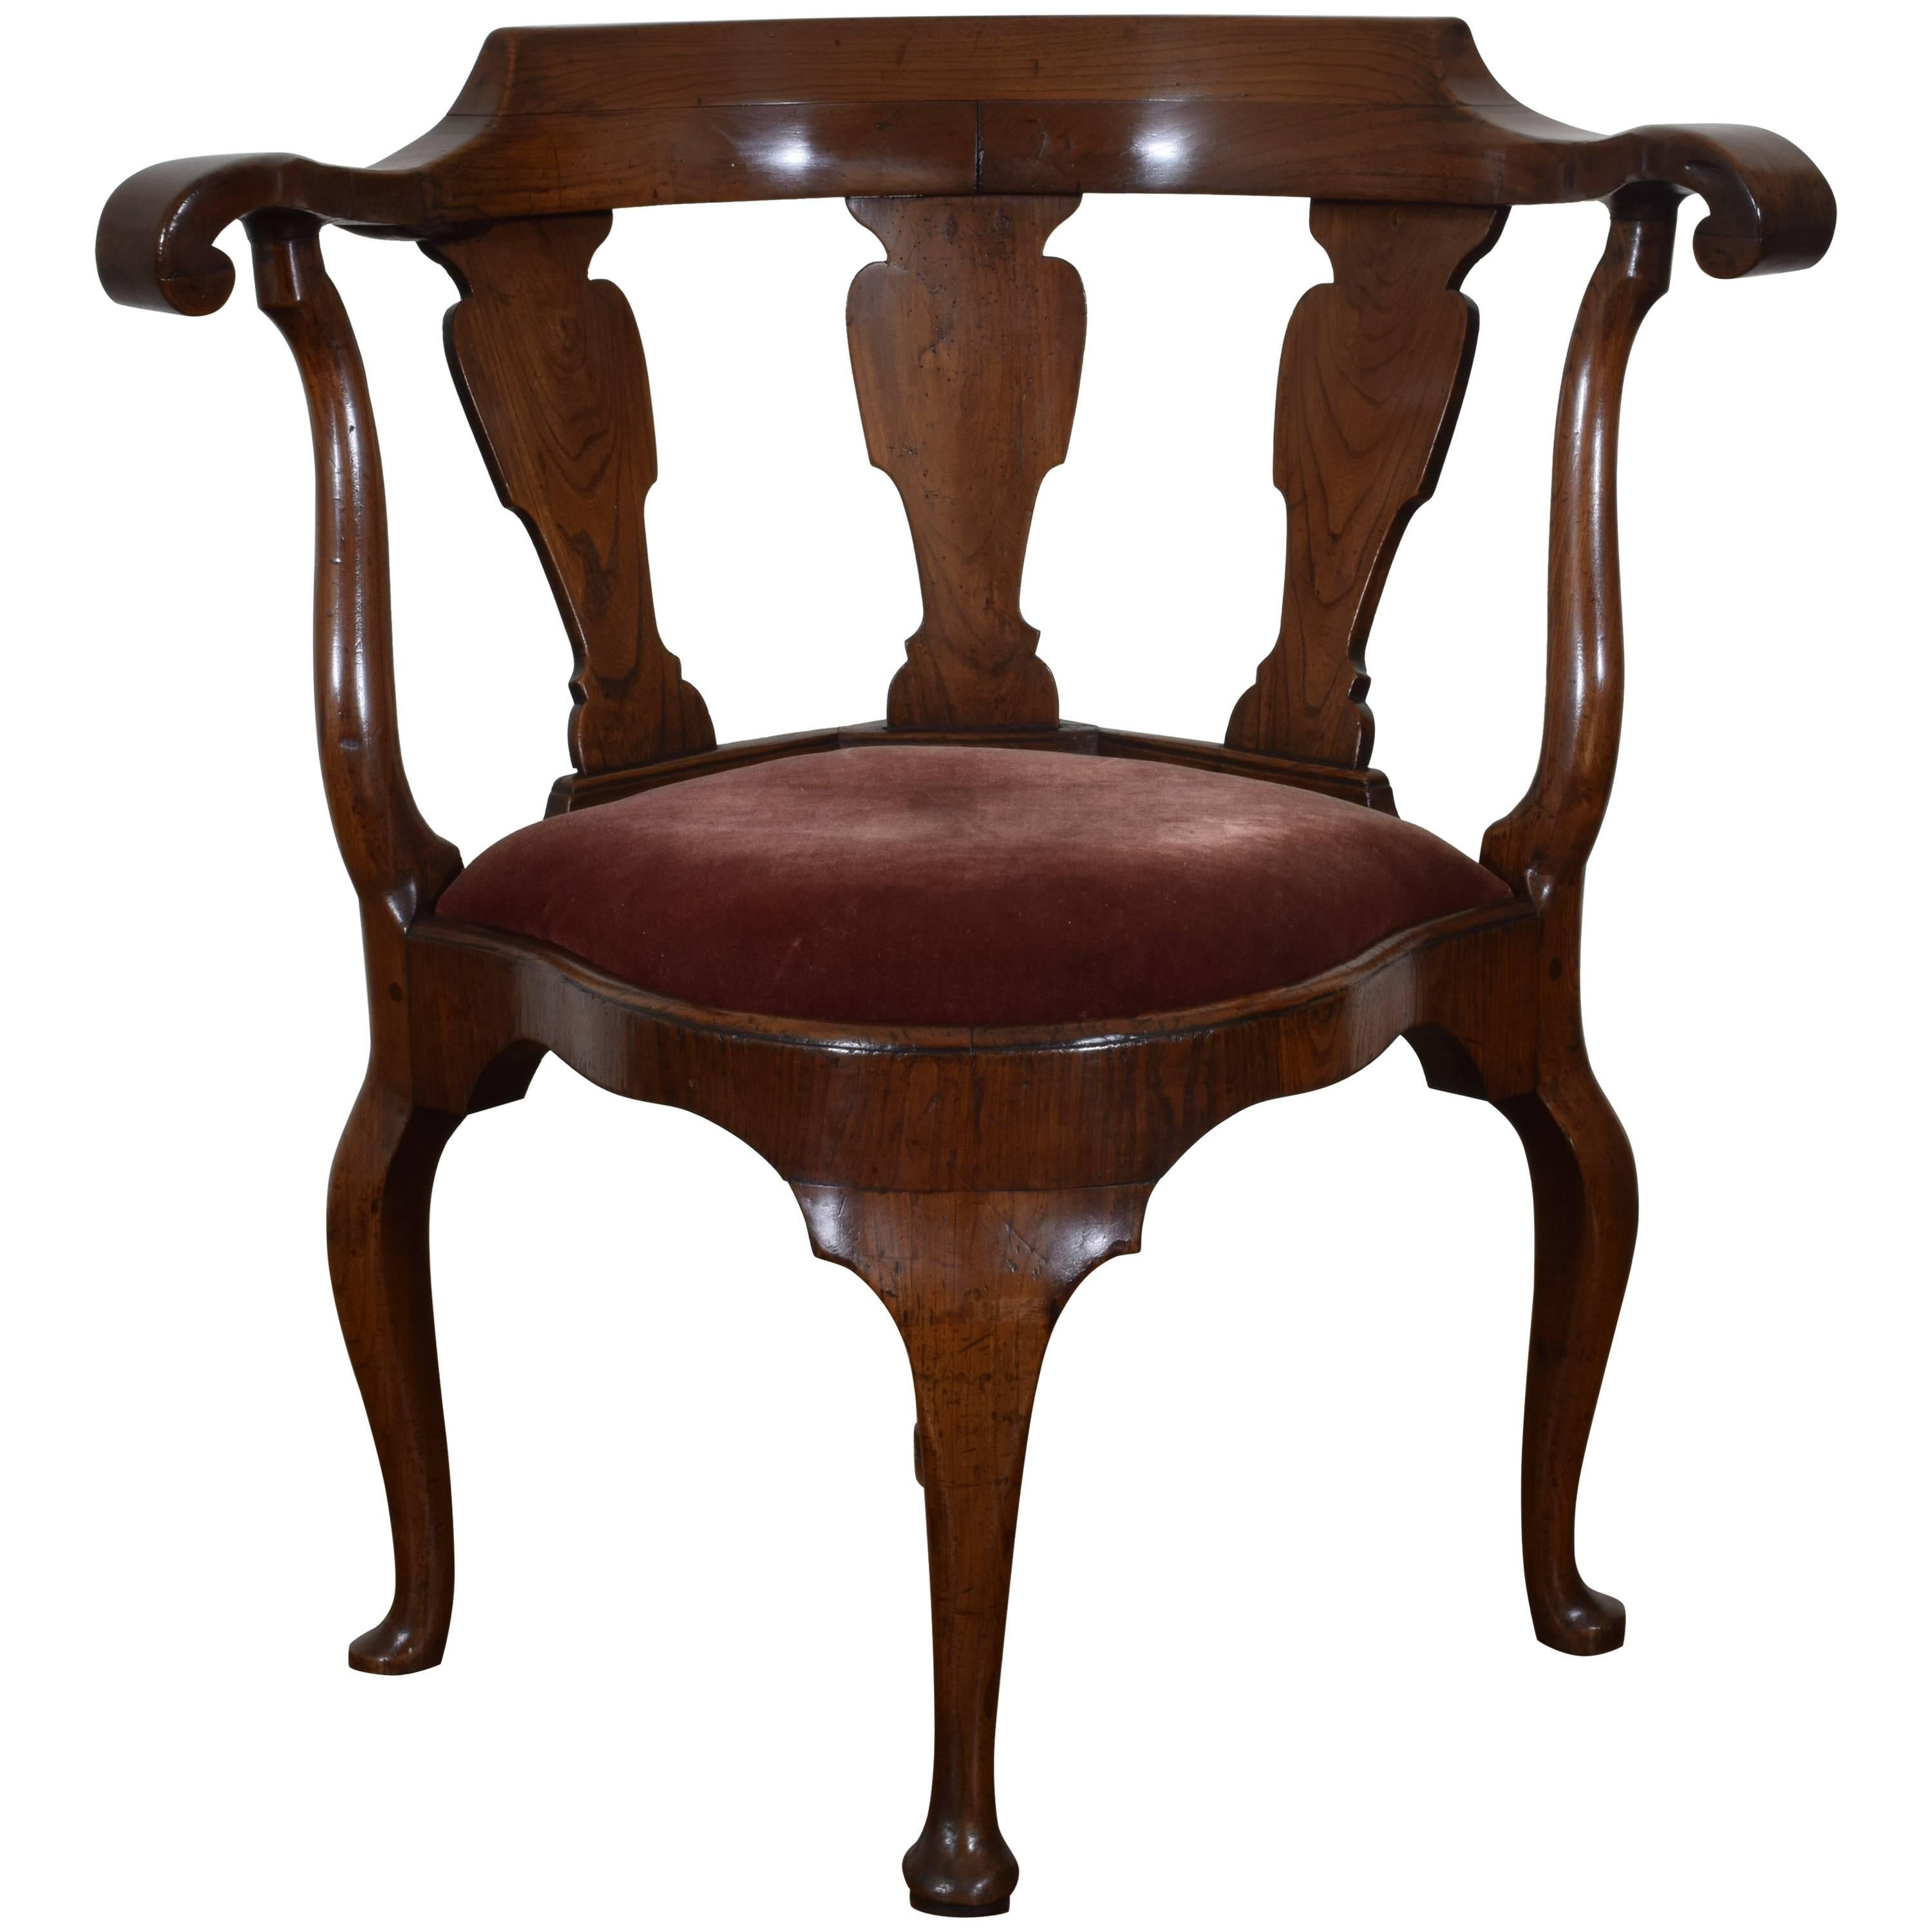 Dutch Yew Wood Corner Chair From The Queen Anne Period, 18th Century For  Sale